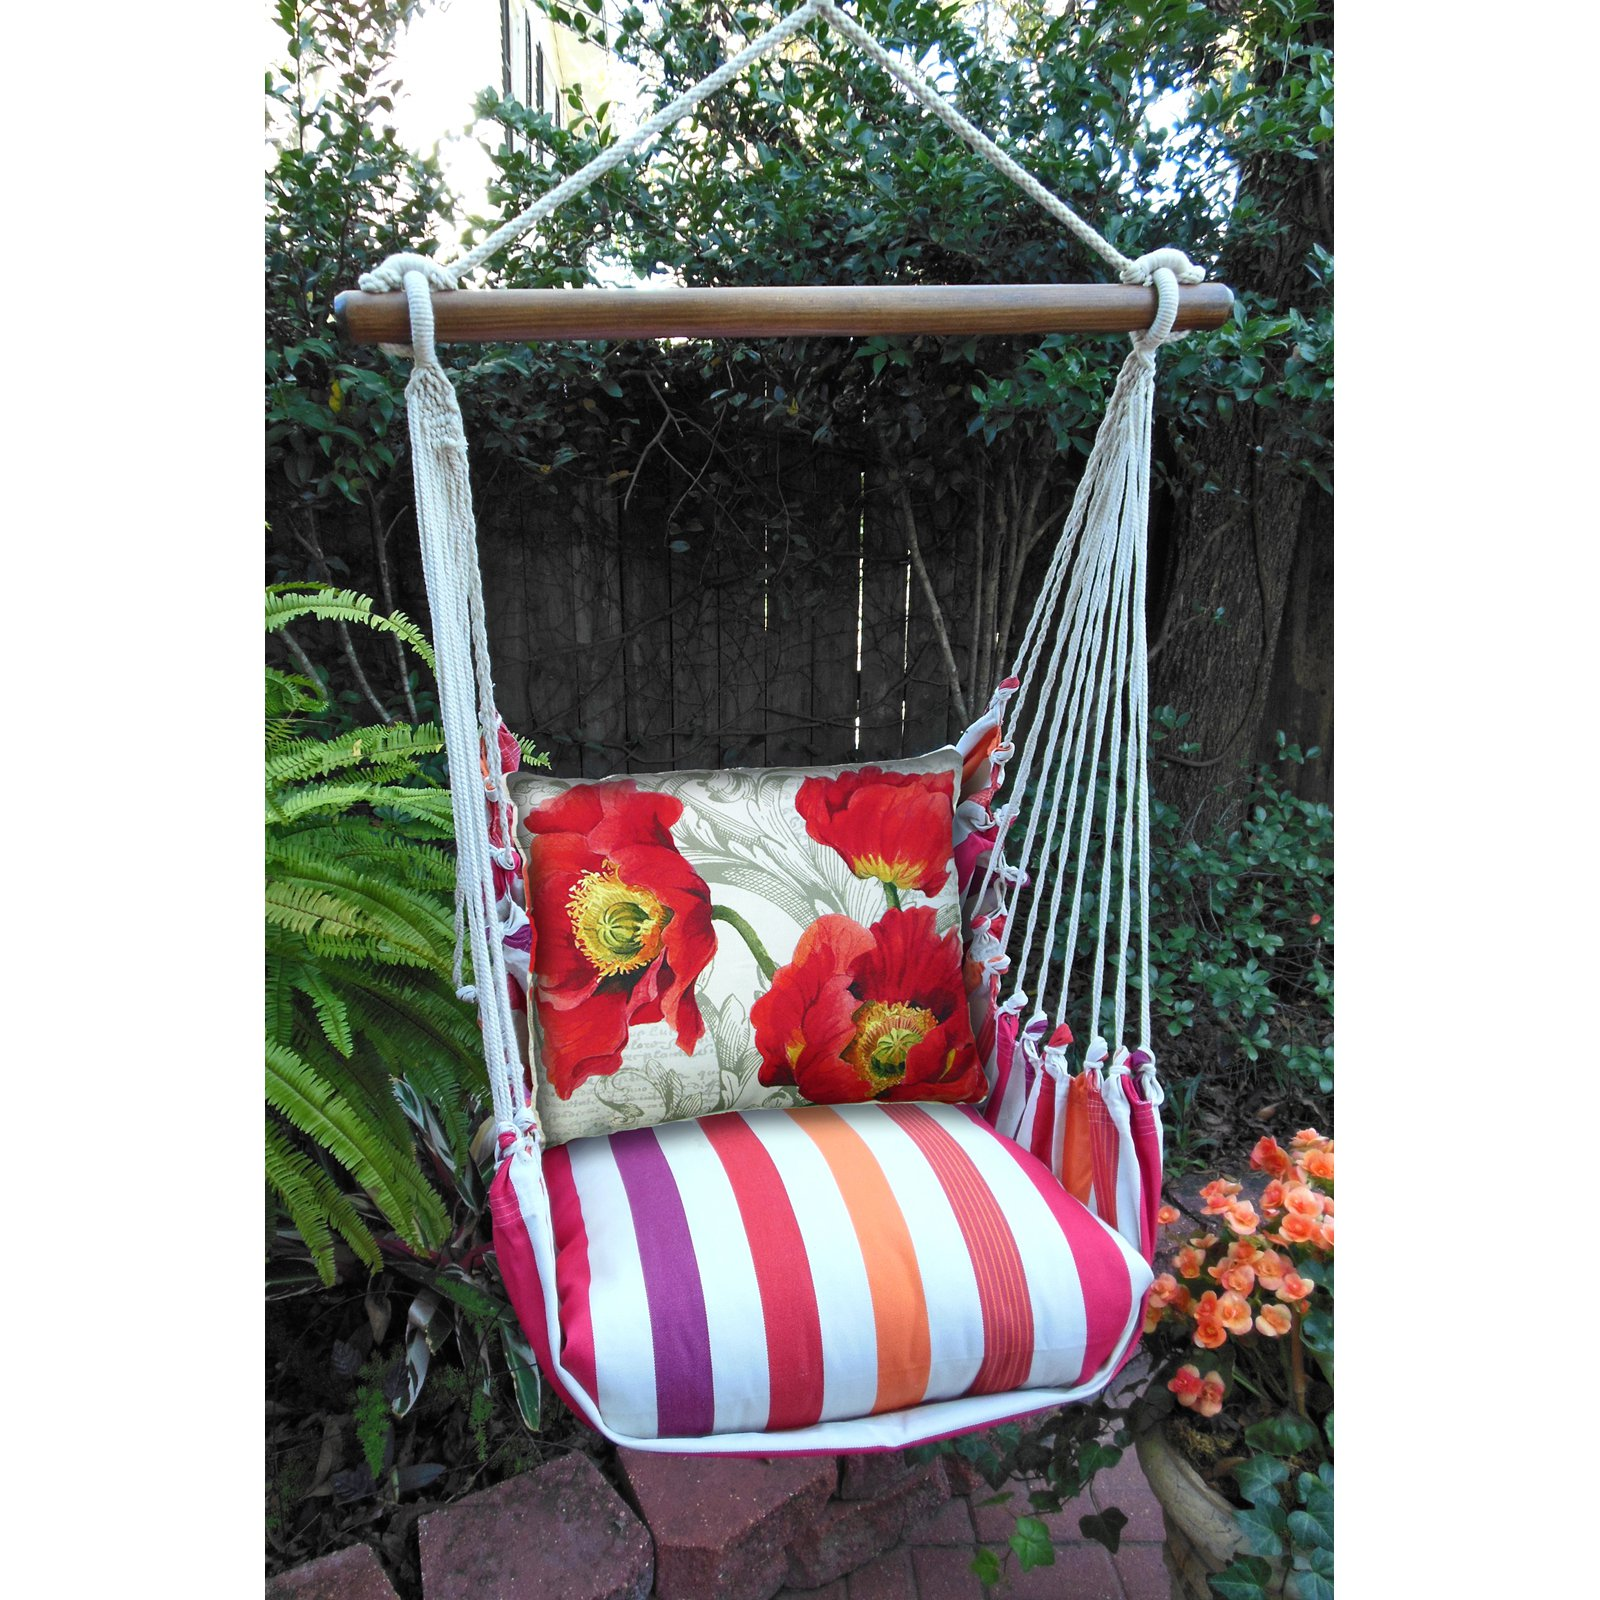 Magnolia Casual Poppies Hammock Chair & Pillow Set